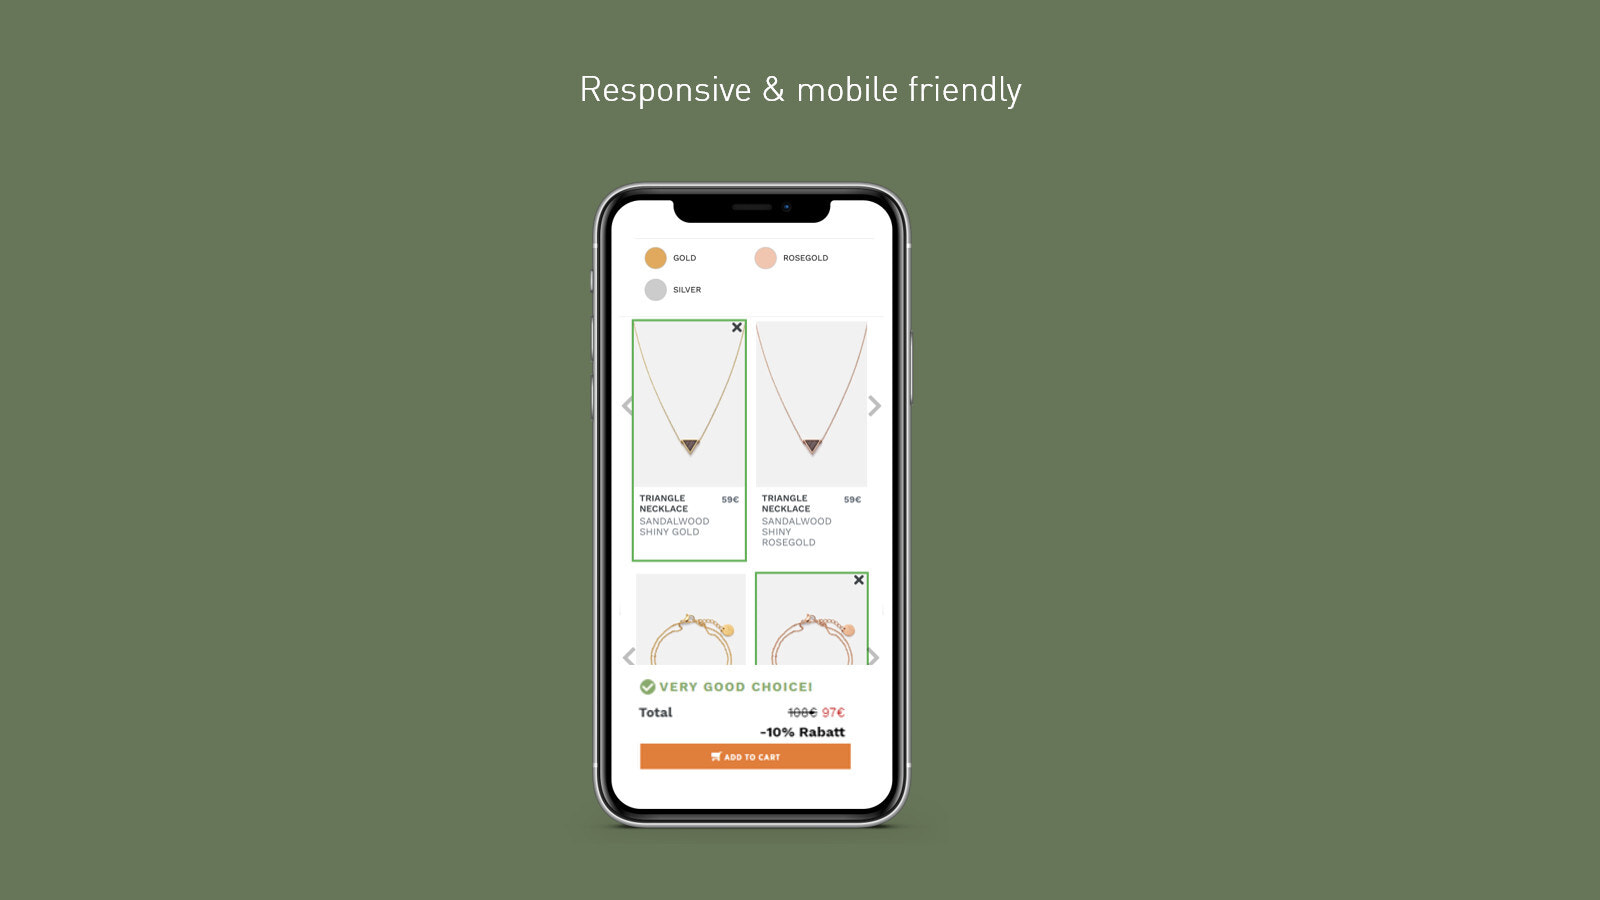 Responsive and mobile friendly.